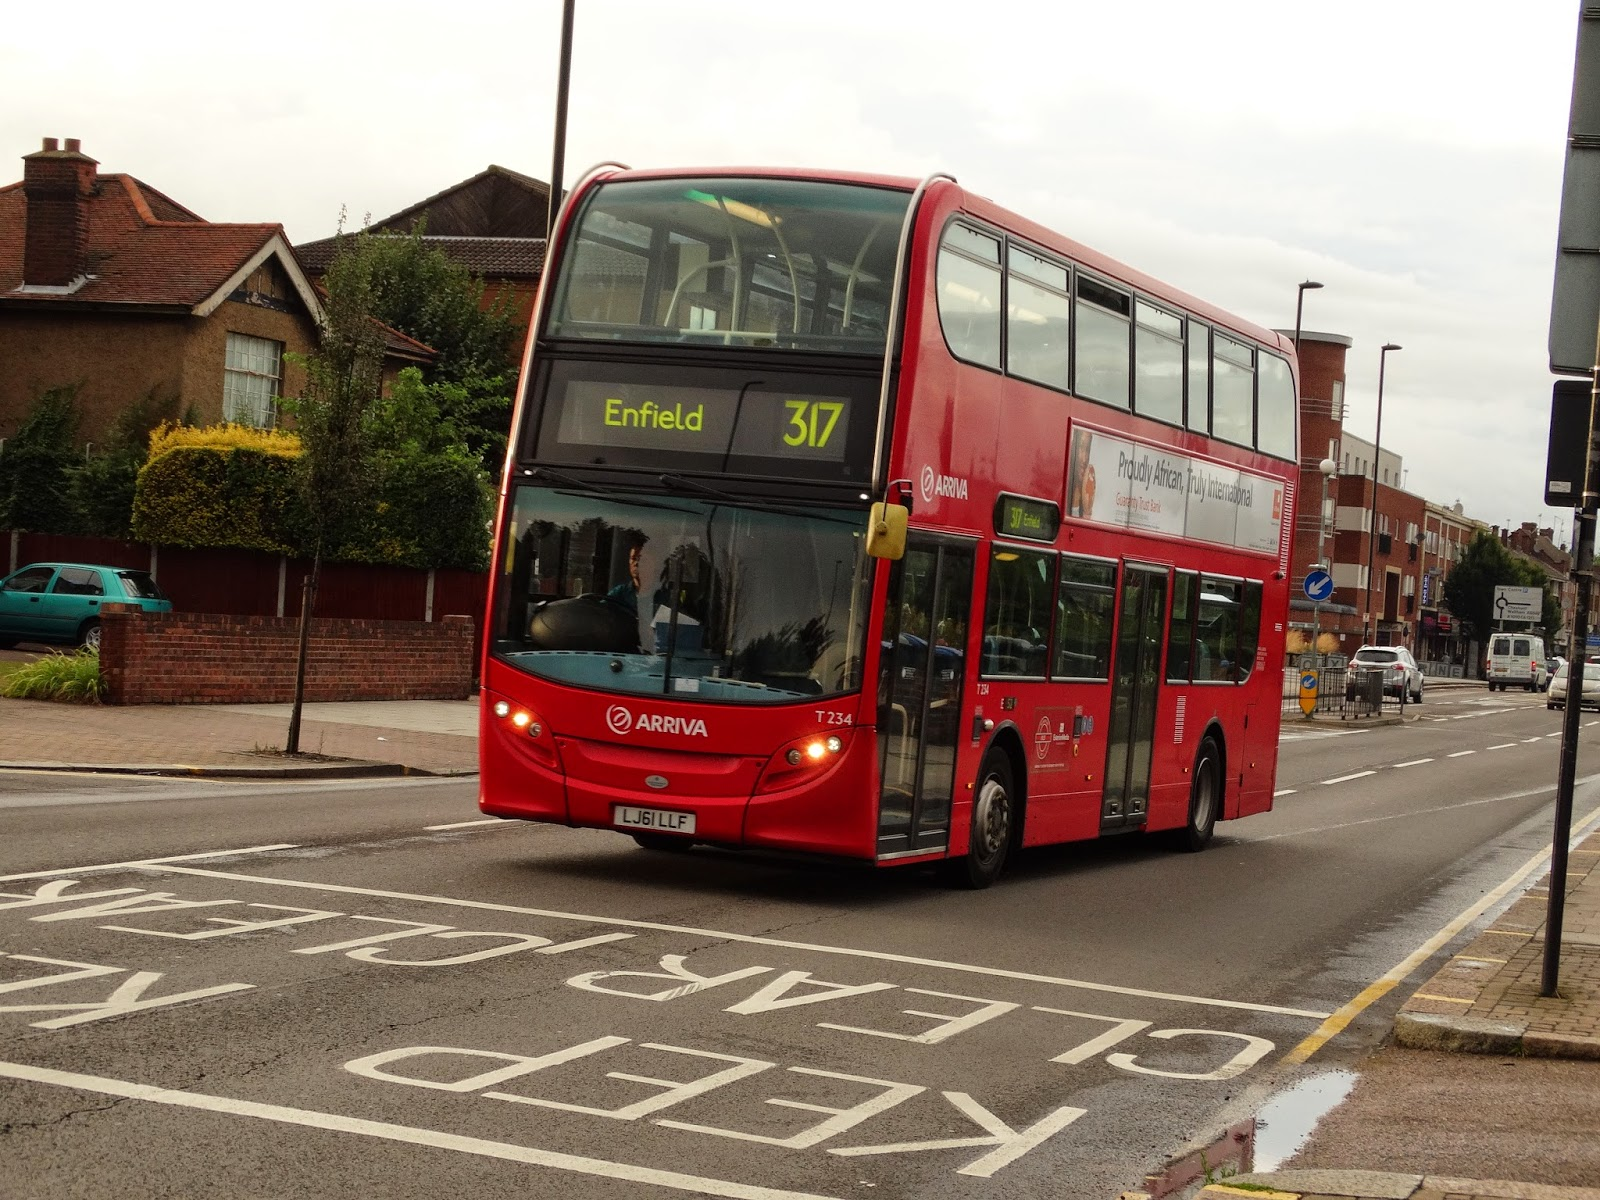 london connected: gallery: routes 300-399